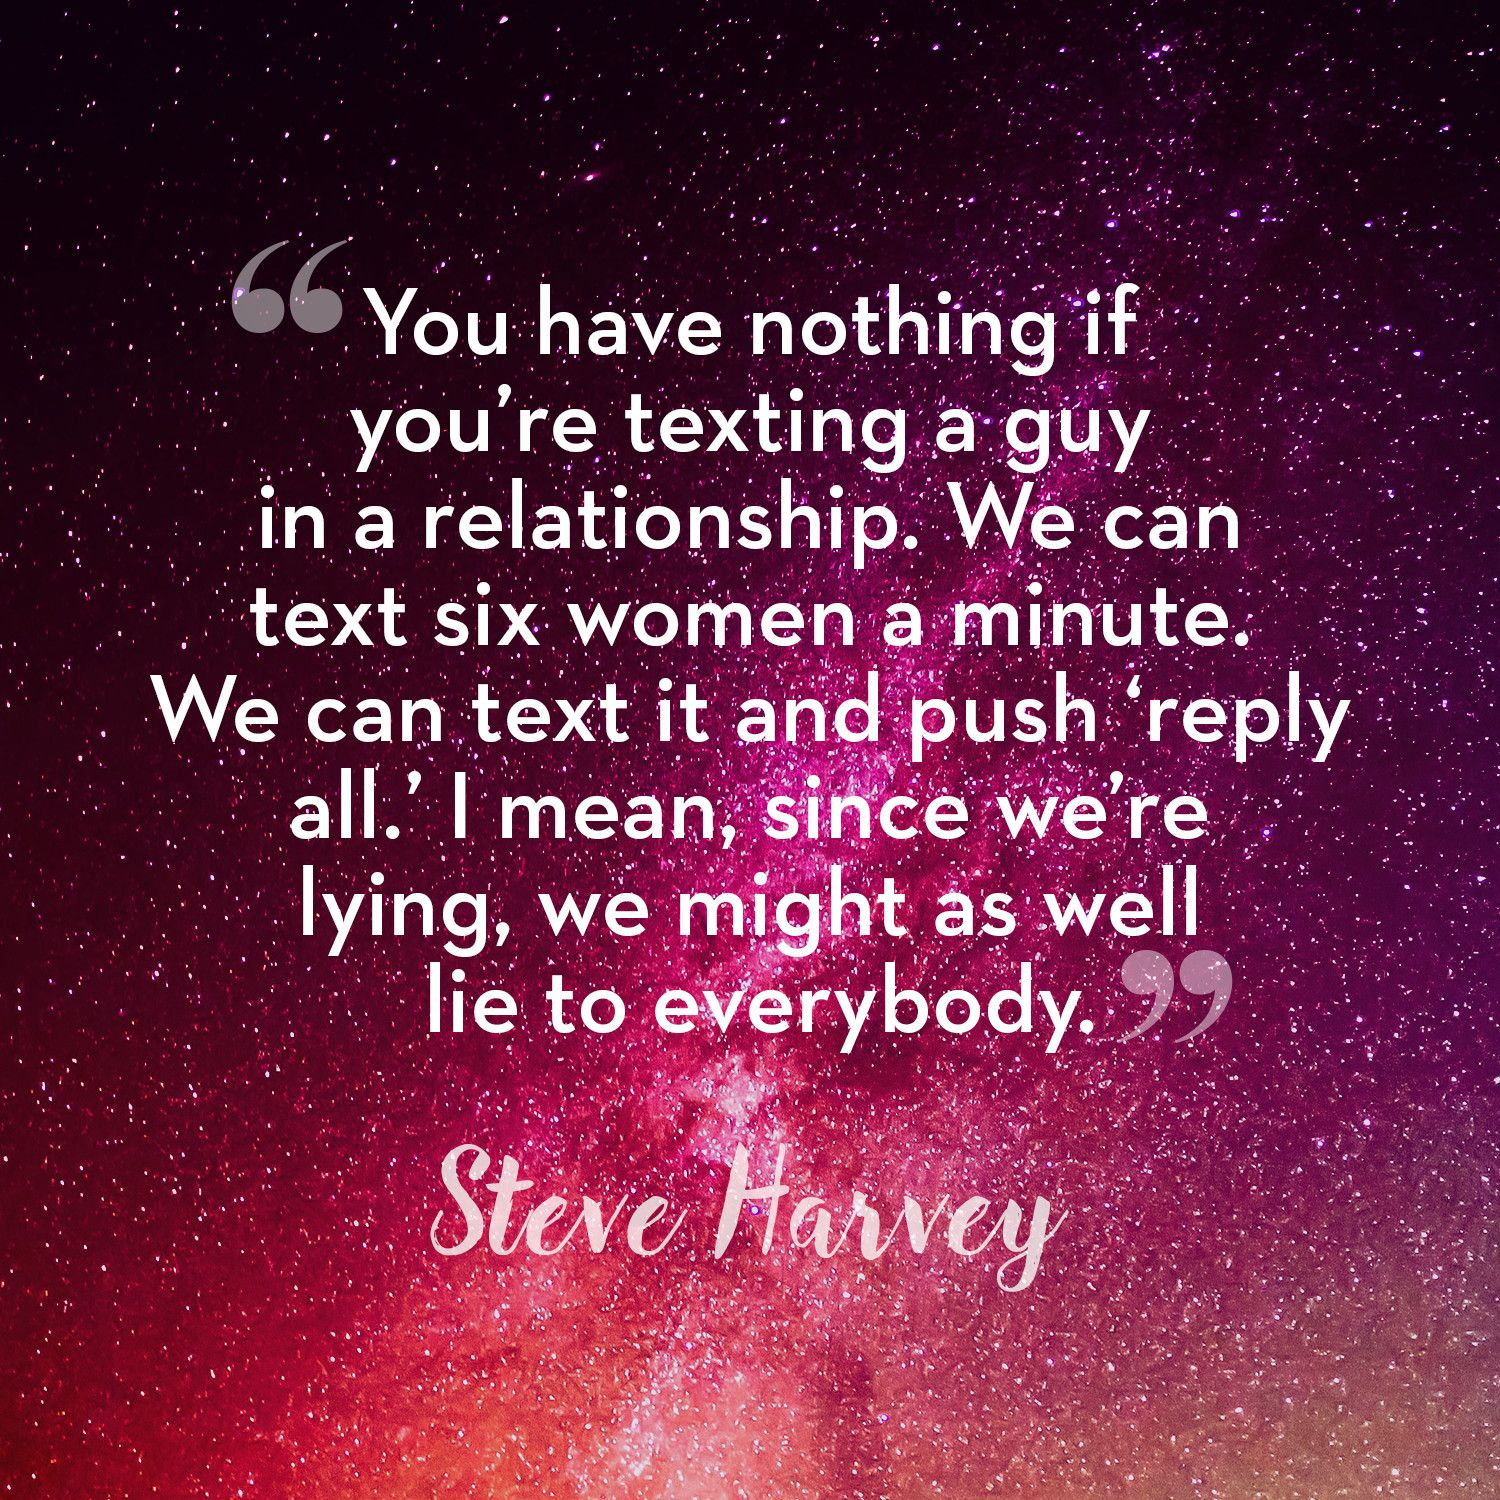 50 Best Relationship Quotes From Steve Harvey Steve Harvey Dating and Relationship Advice